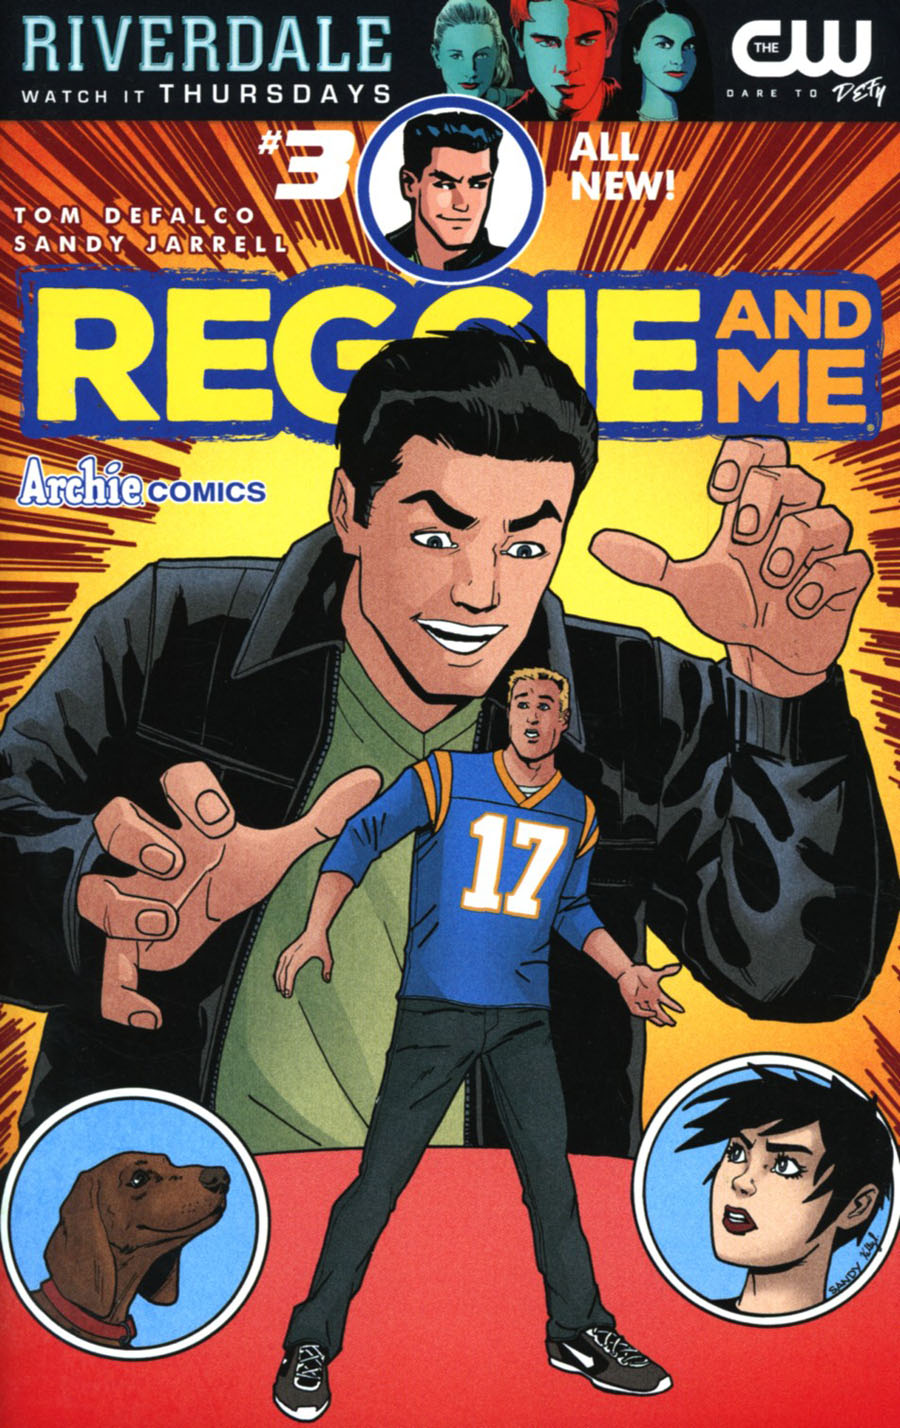 Reggie And Me Vol 2 #3 Cover A Regular Sandy Jarrell Cover